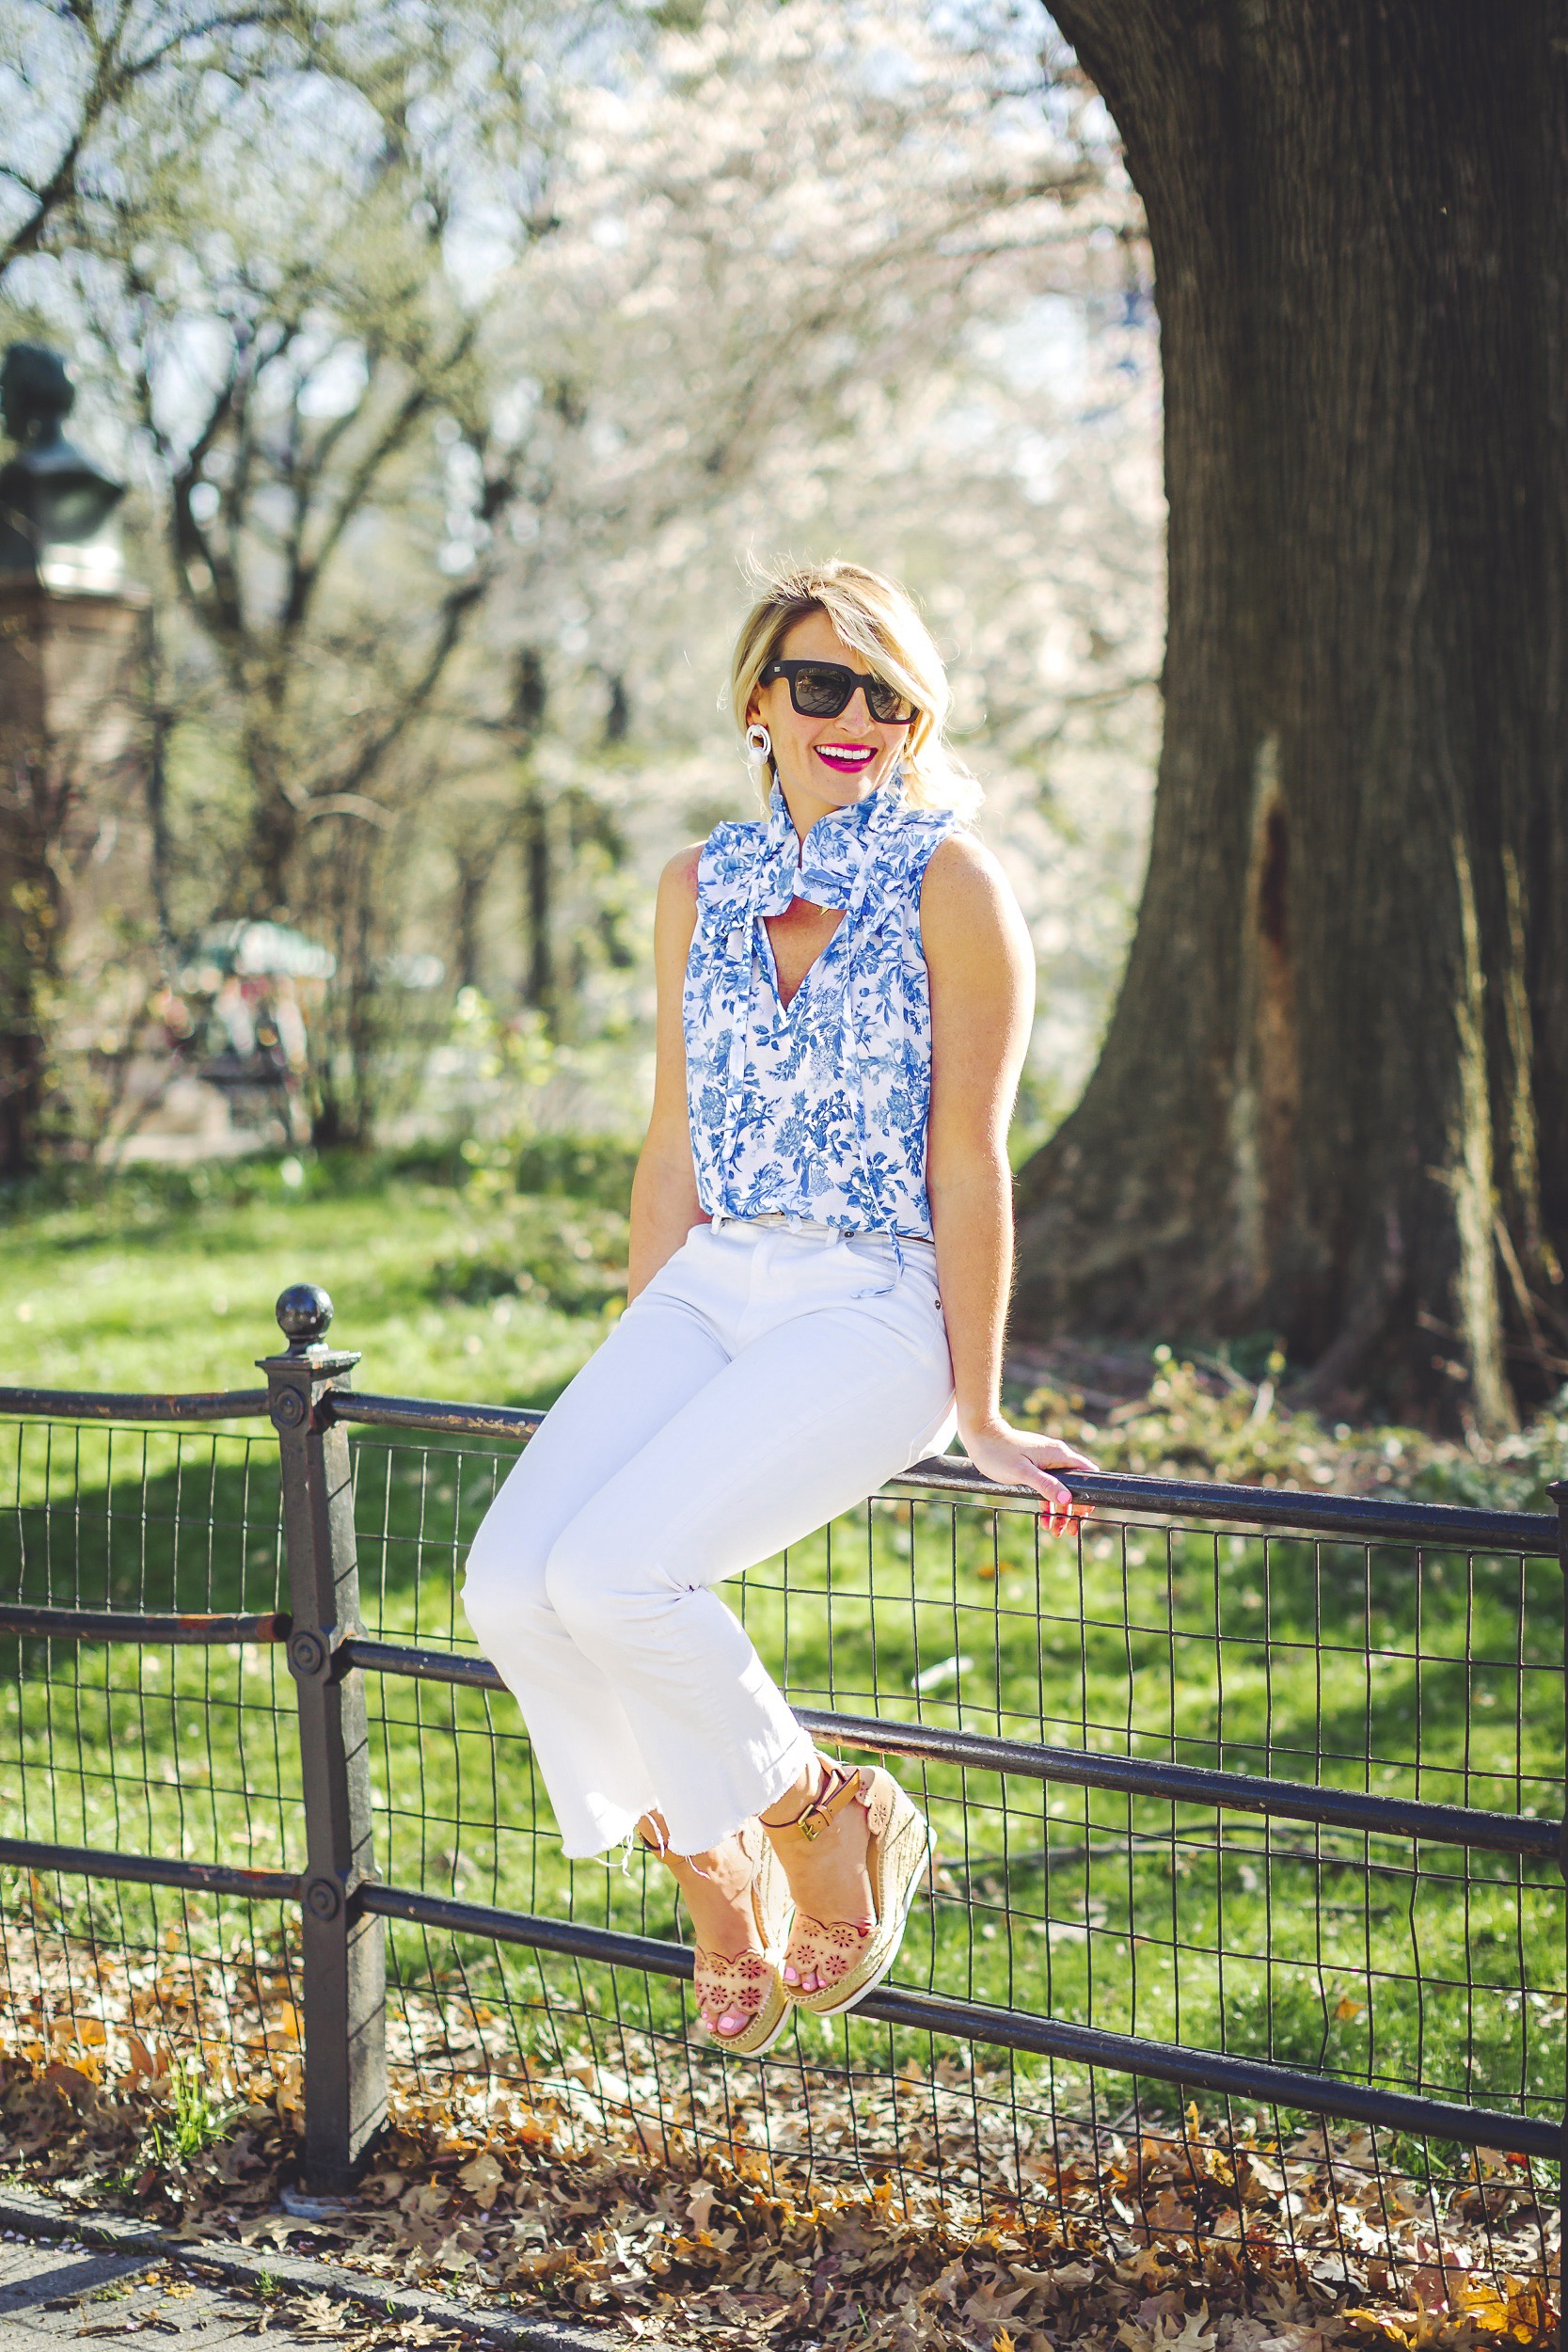 Tuckernuck Floral Top, Citizens of Humanity White Denim, Chloe Wedges